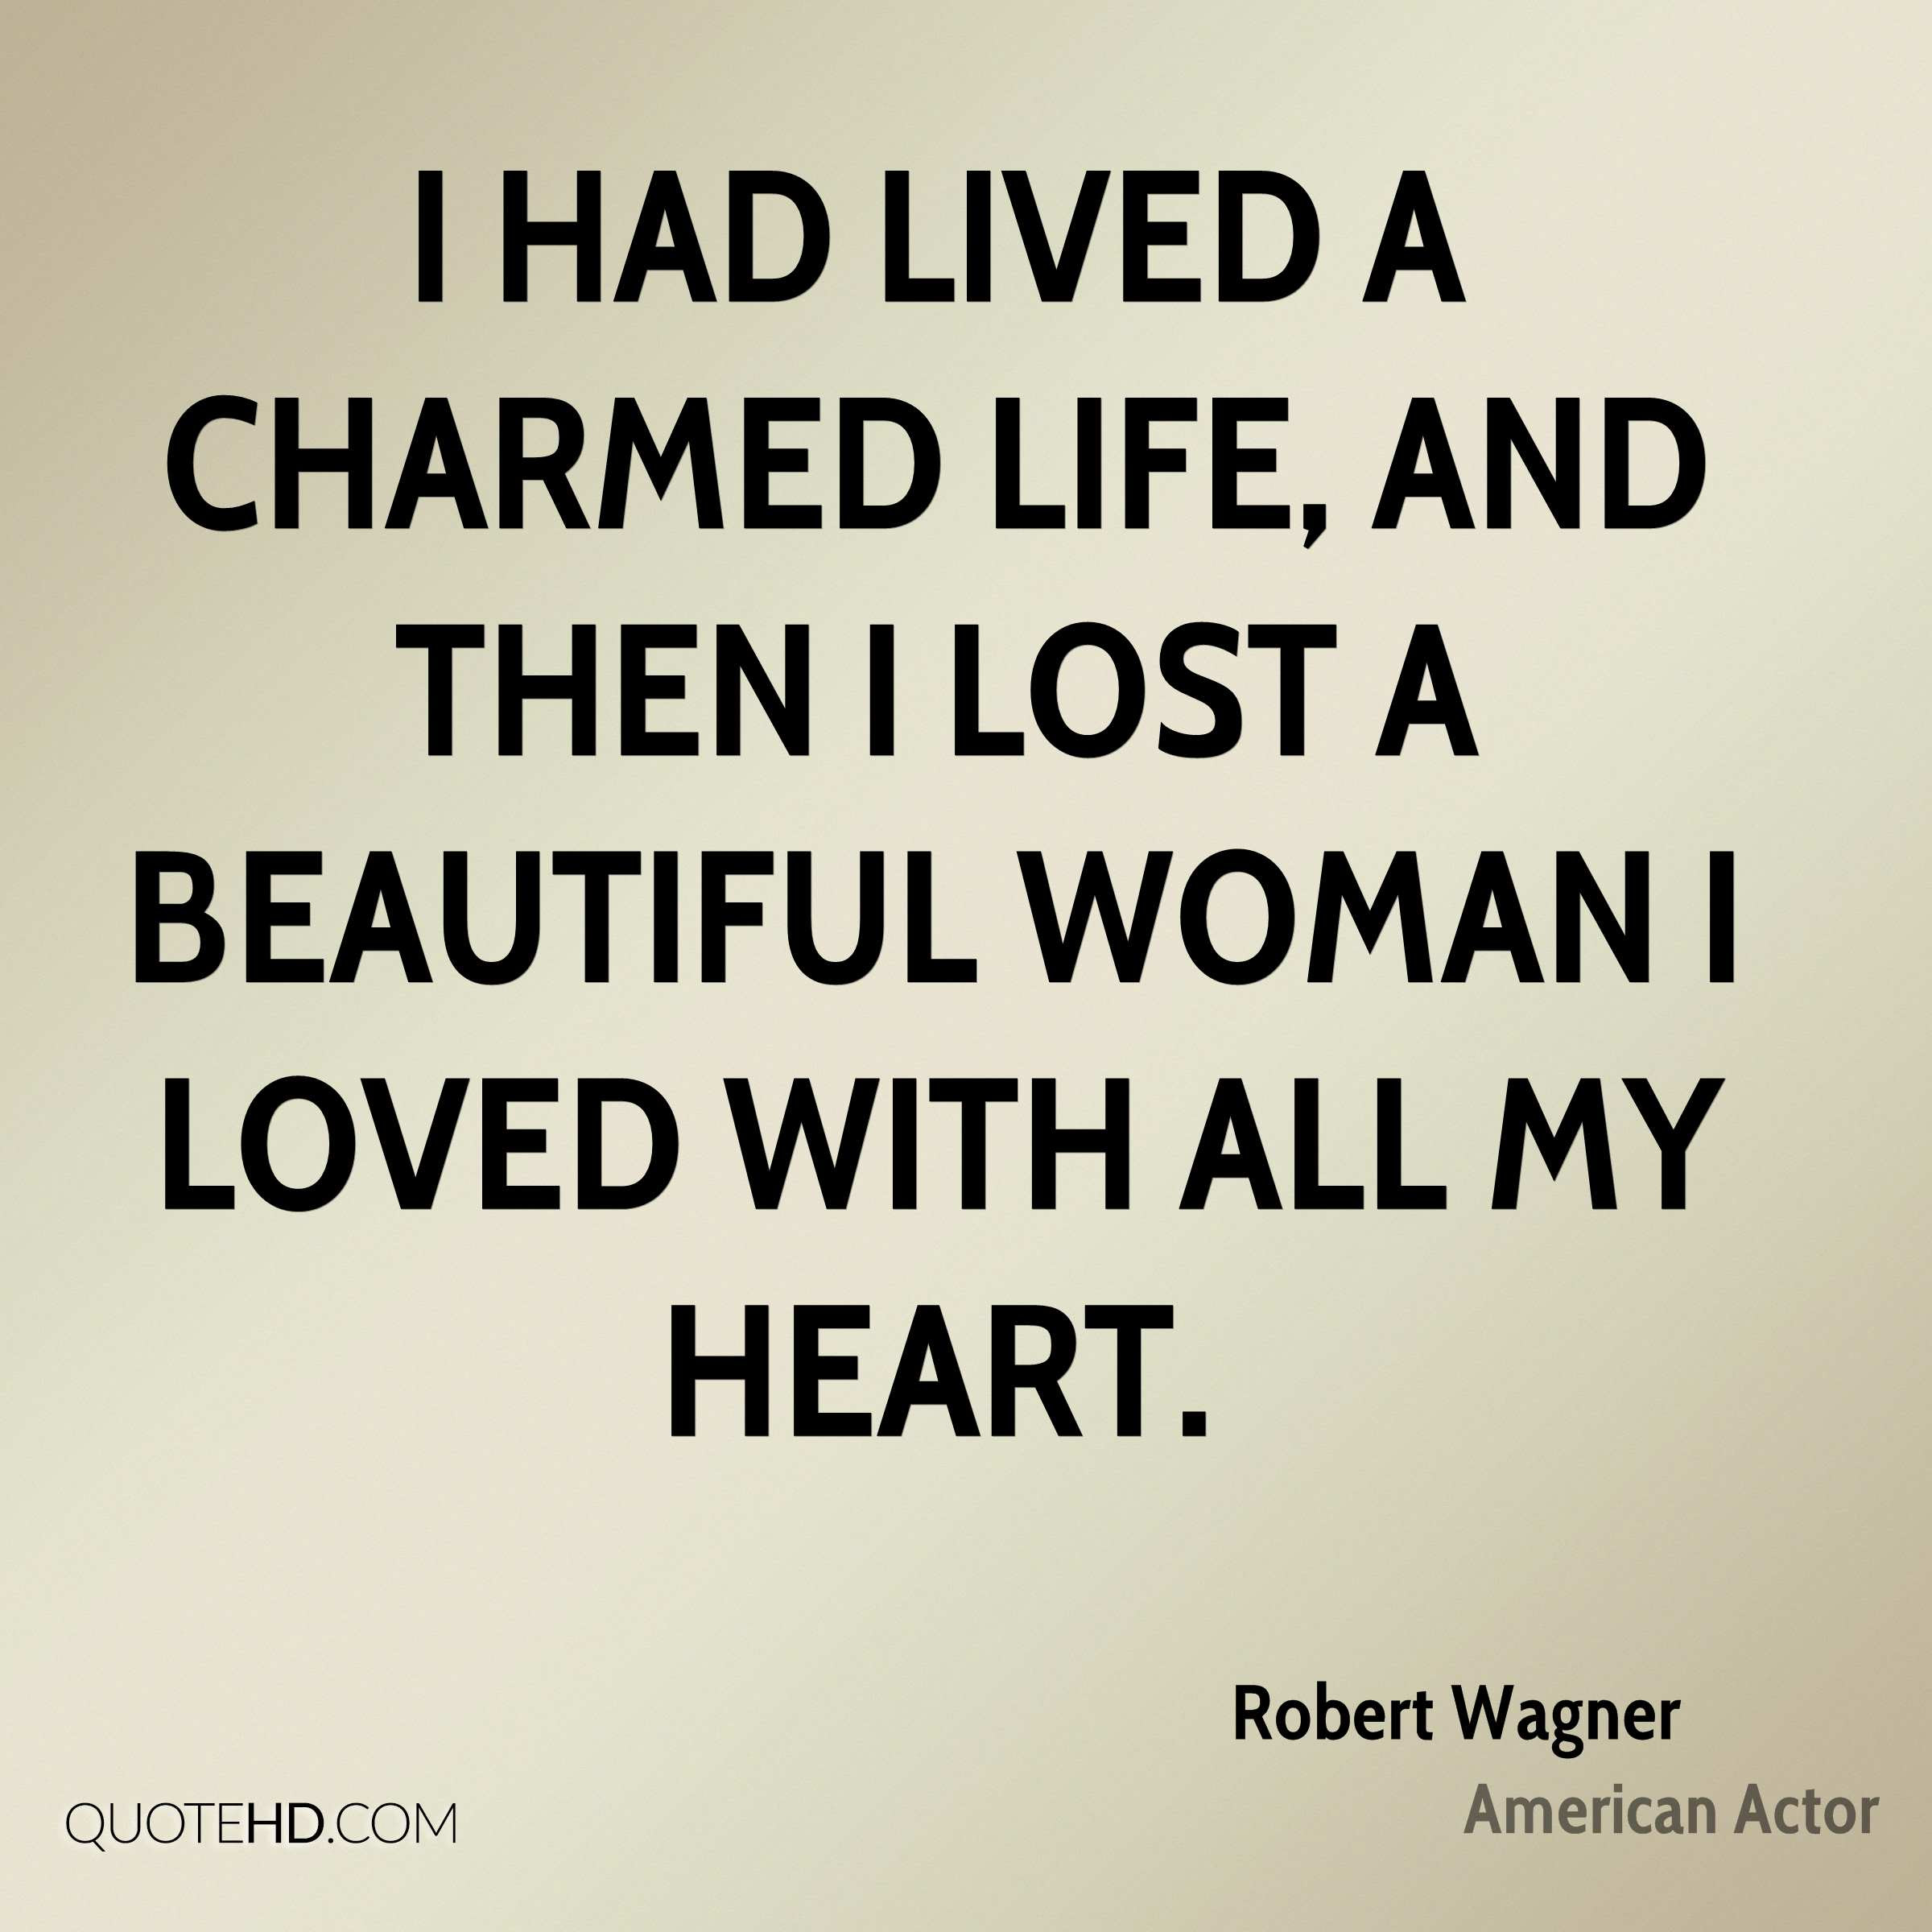 I had lived a charmed life and then I lost a beautiful woman I loved